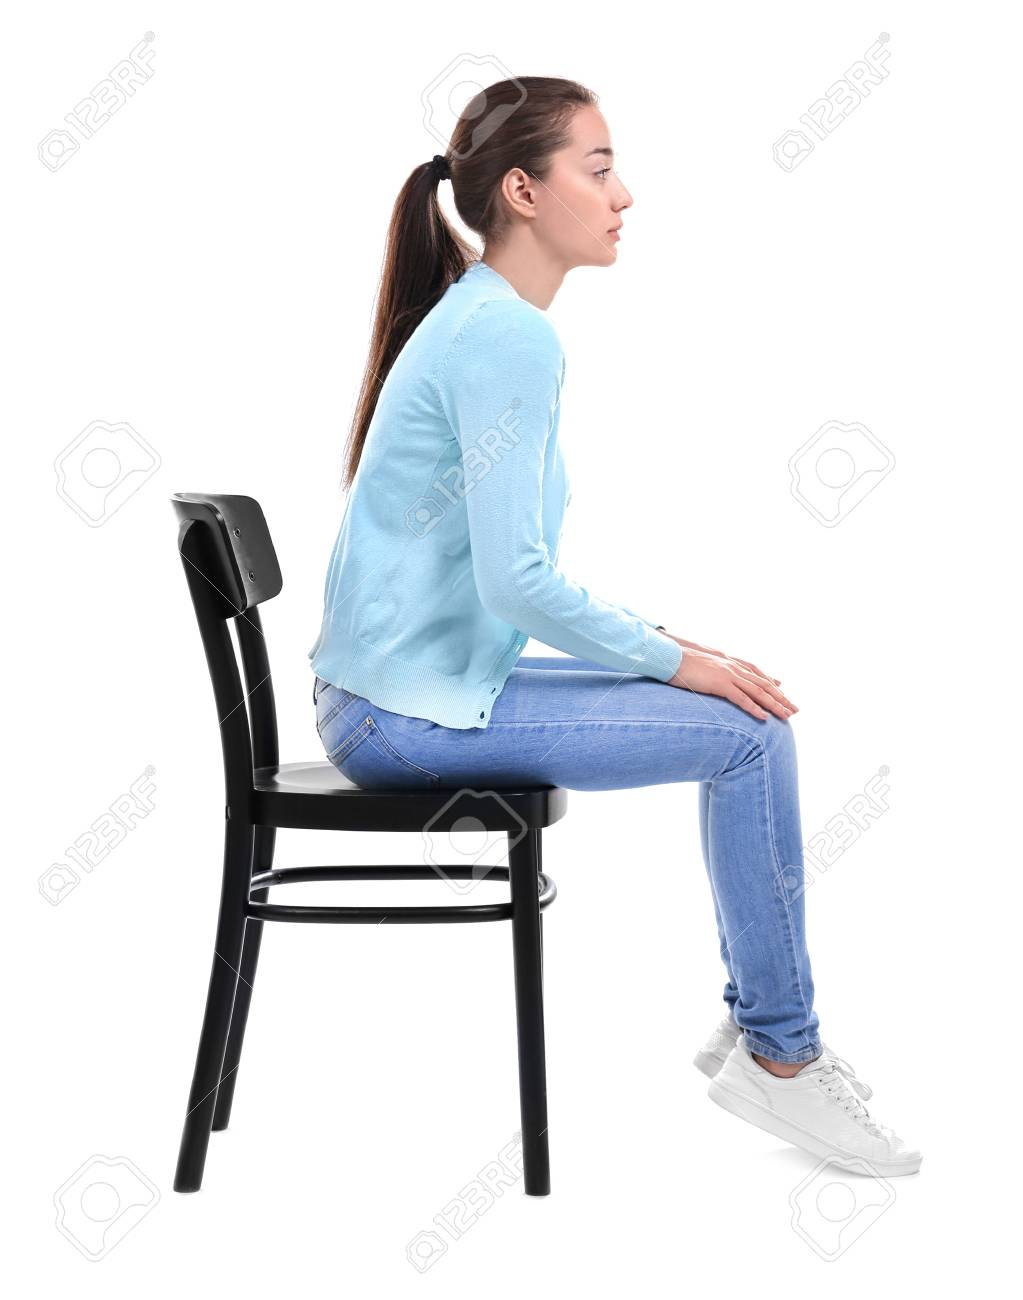 Posture Concept Young Woman Sitting On Chair Against White 1023x1300